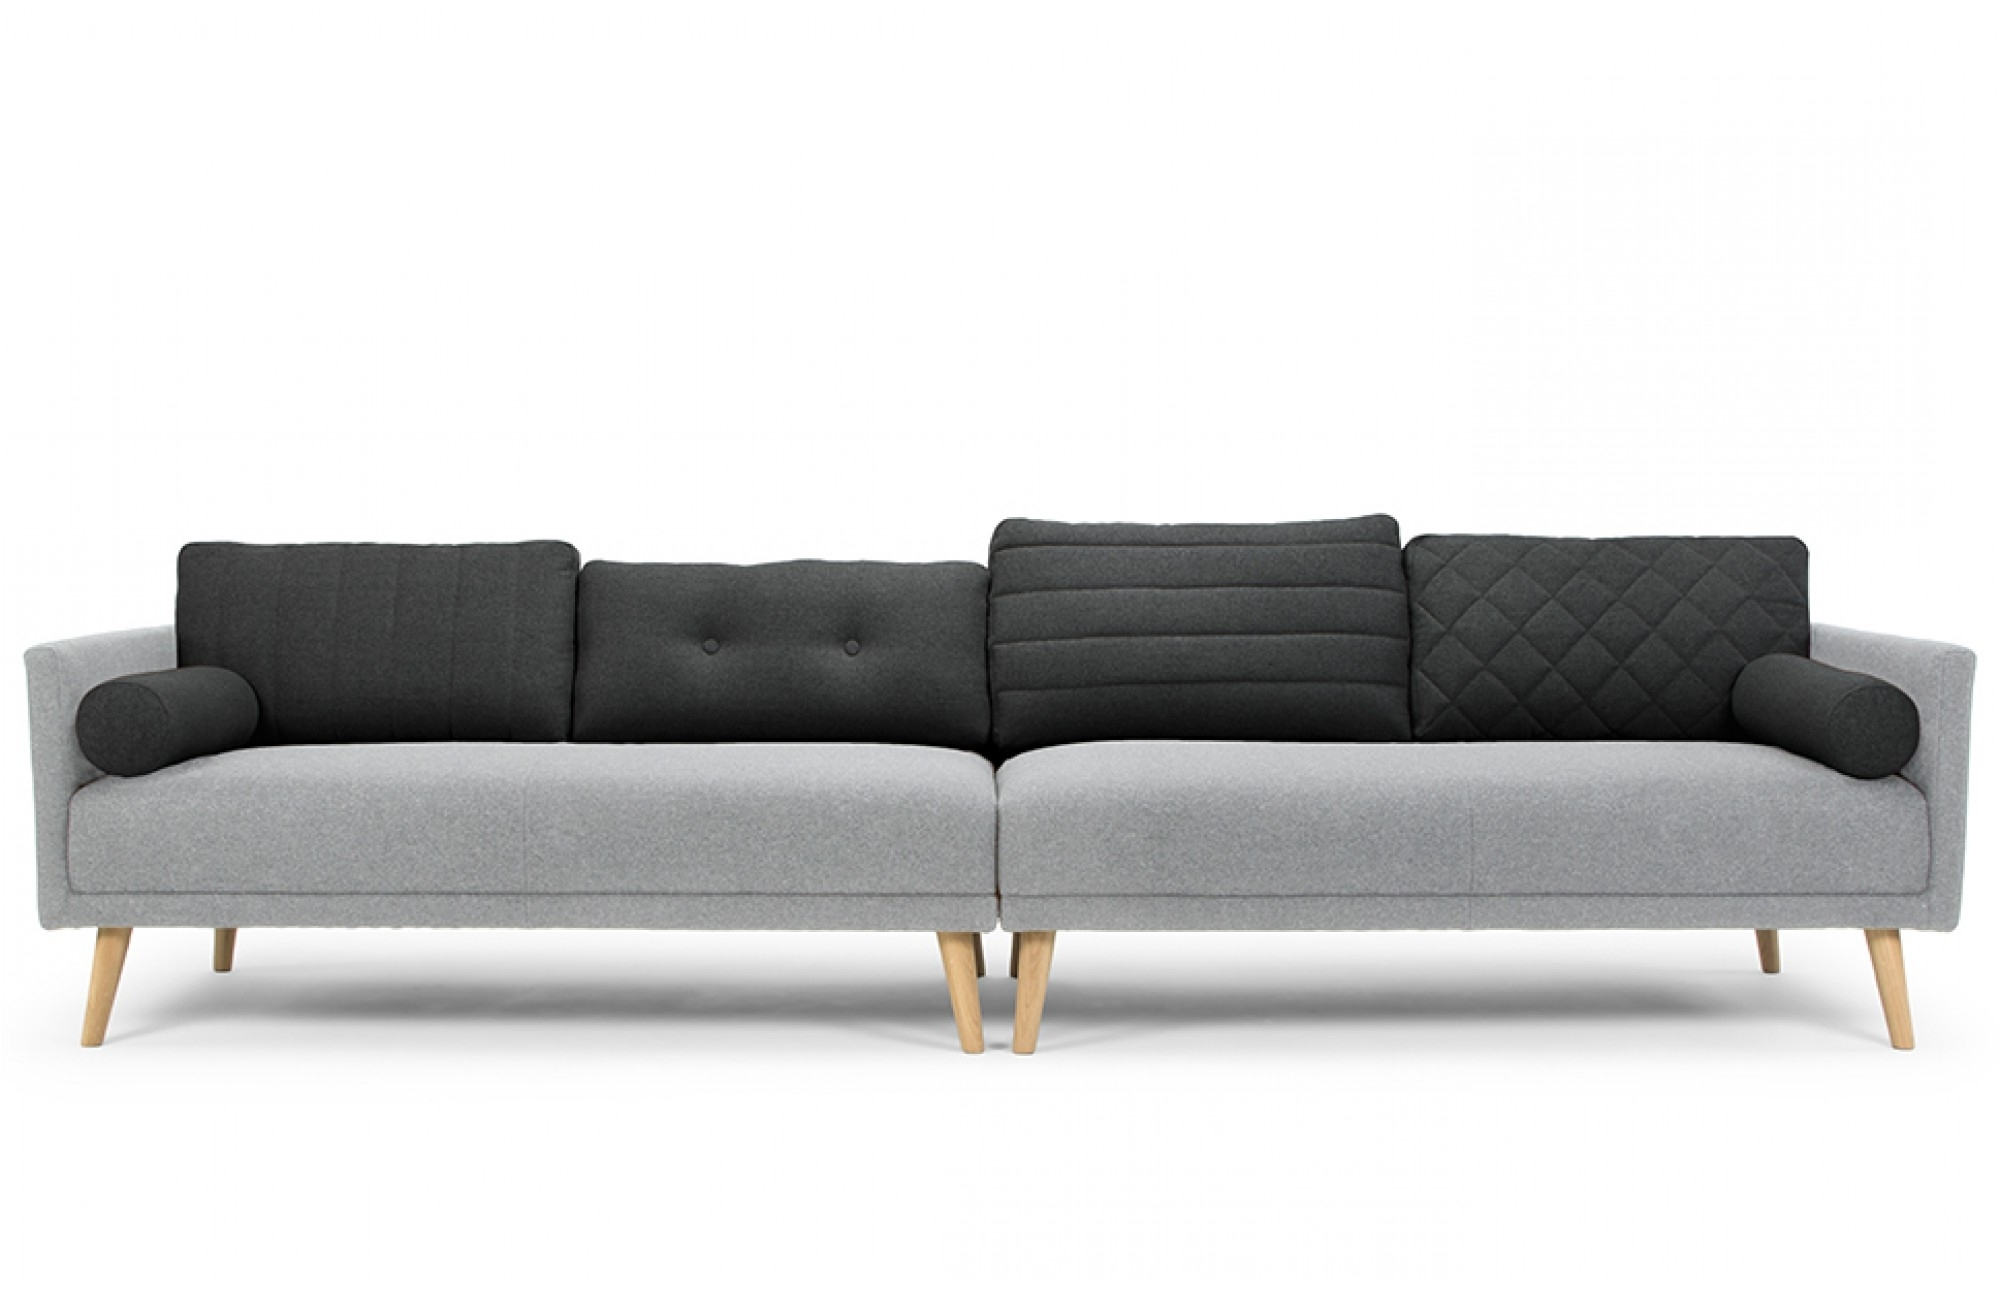 Most Popular 4 Seat Sofas Throughout Grey 4 Seater Sofa – Lounge Furniture – Out & Out Original (View 8 of 15)